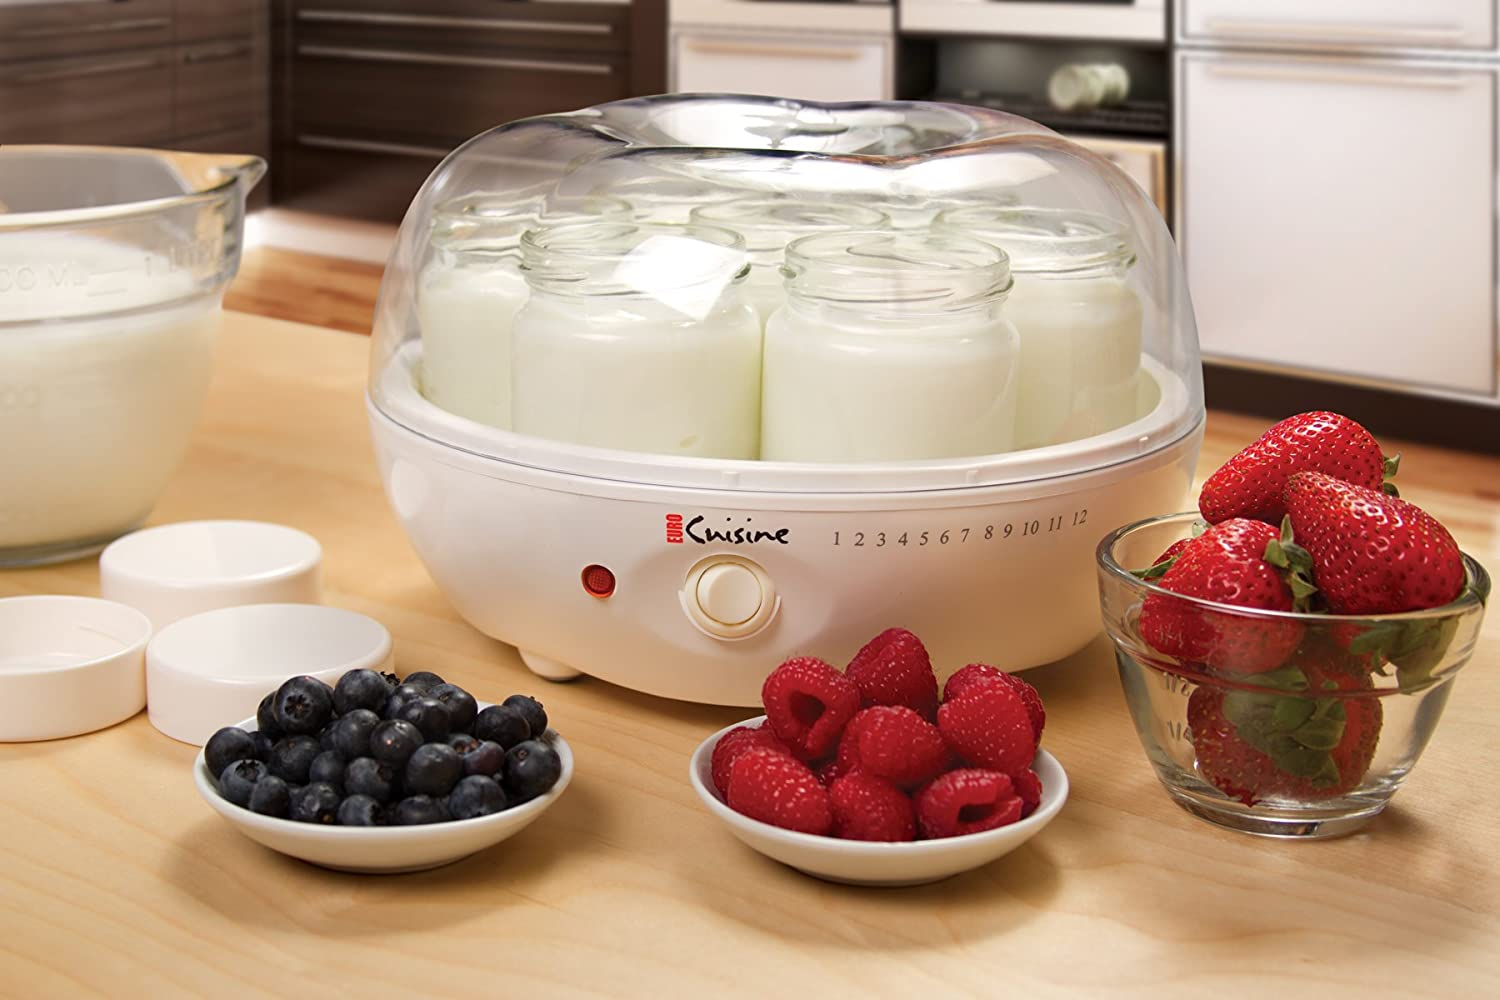 Euro Cuisine Yogurt make : how does a yogurt maker work?